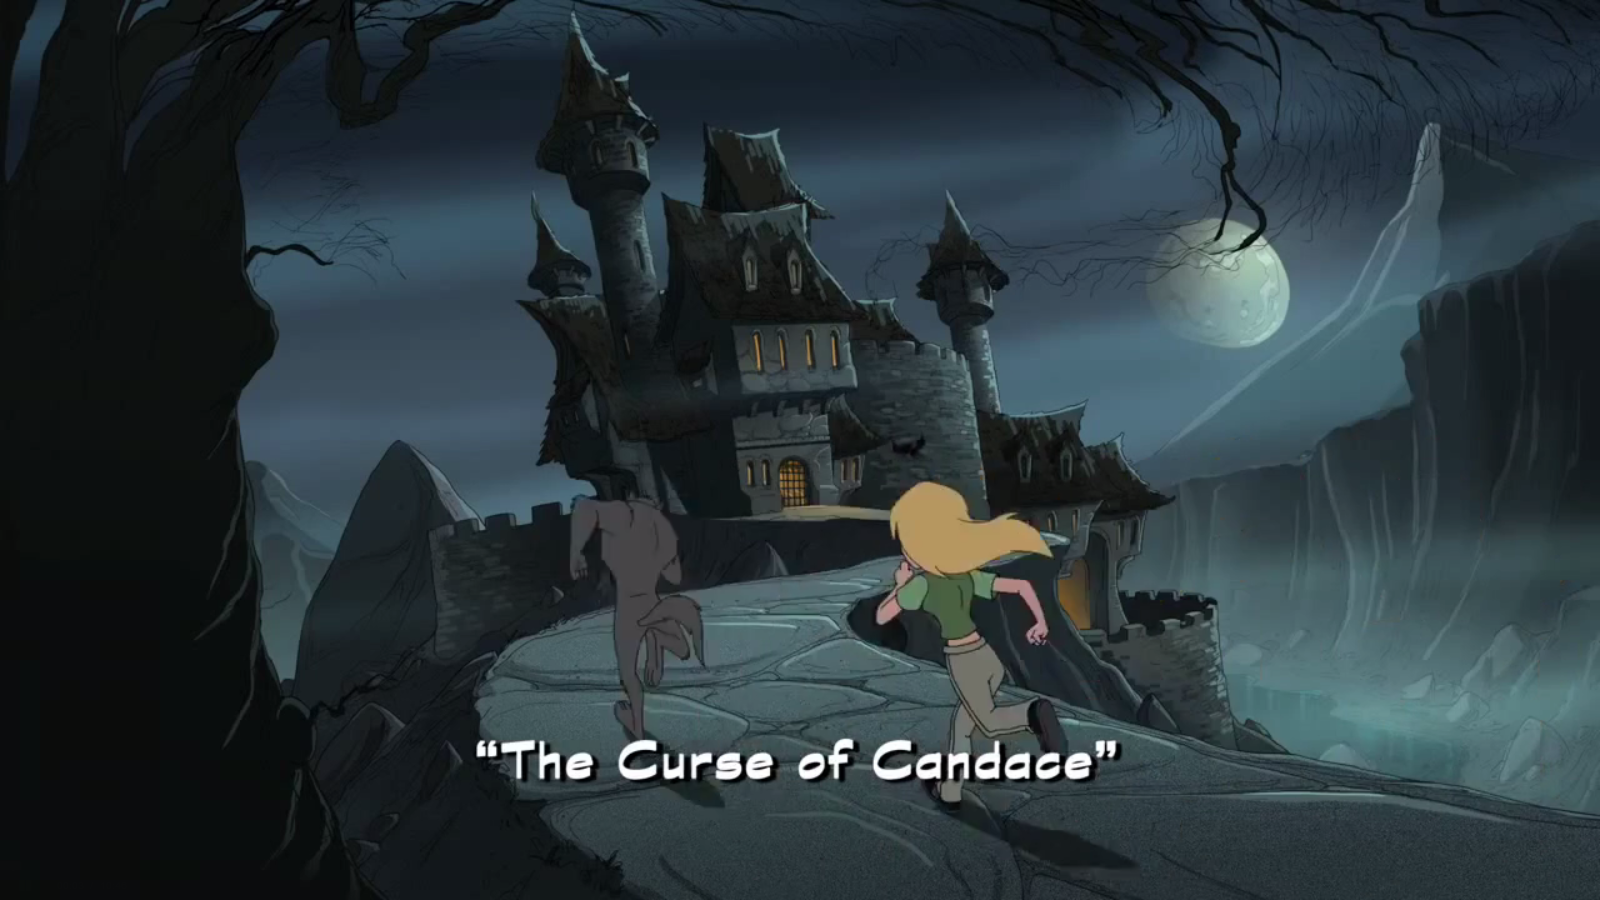 The Curse of Candace